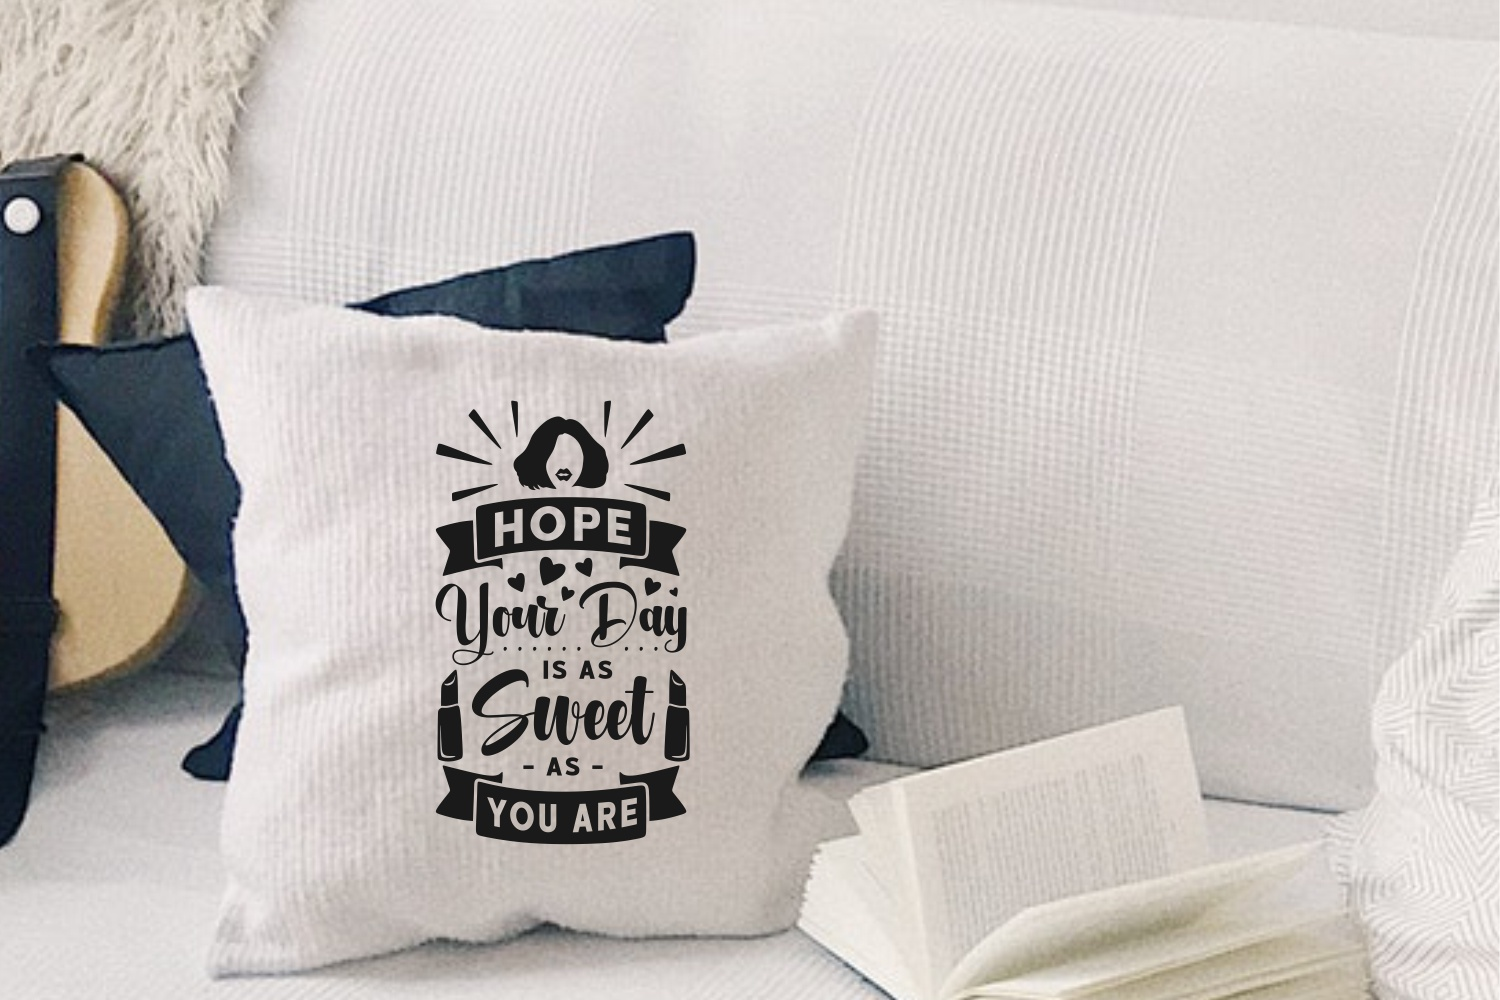 Two decorative pillows - light and dark with embossed lettering.